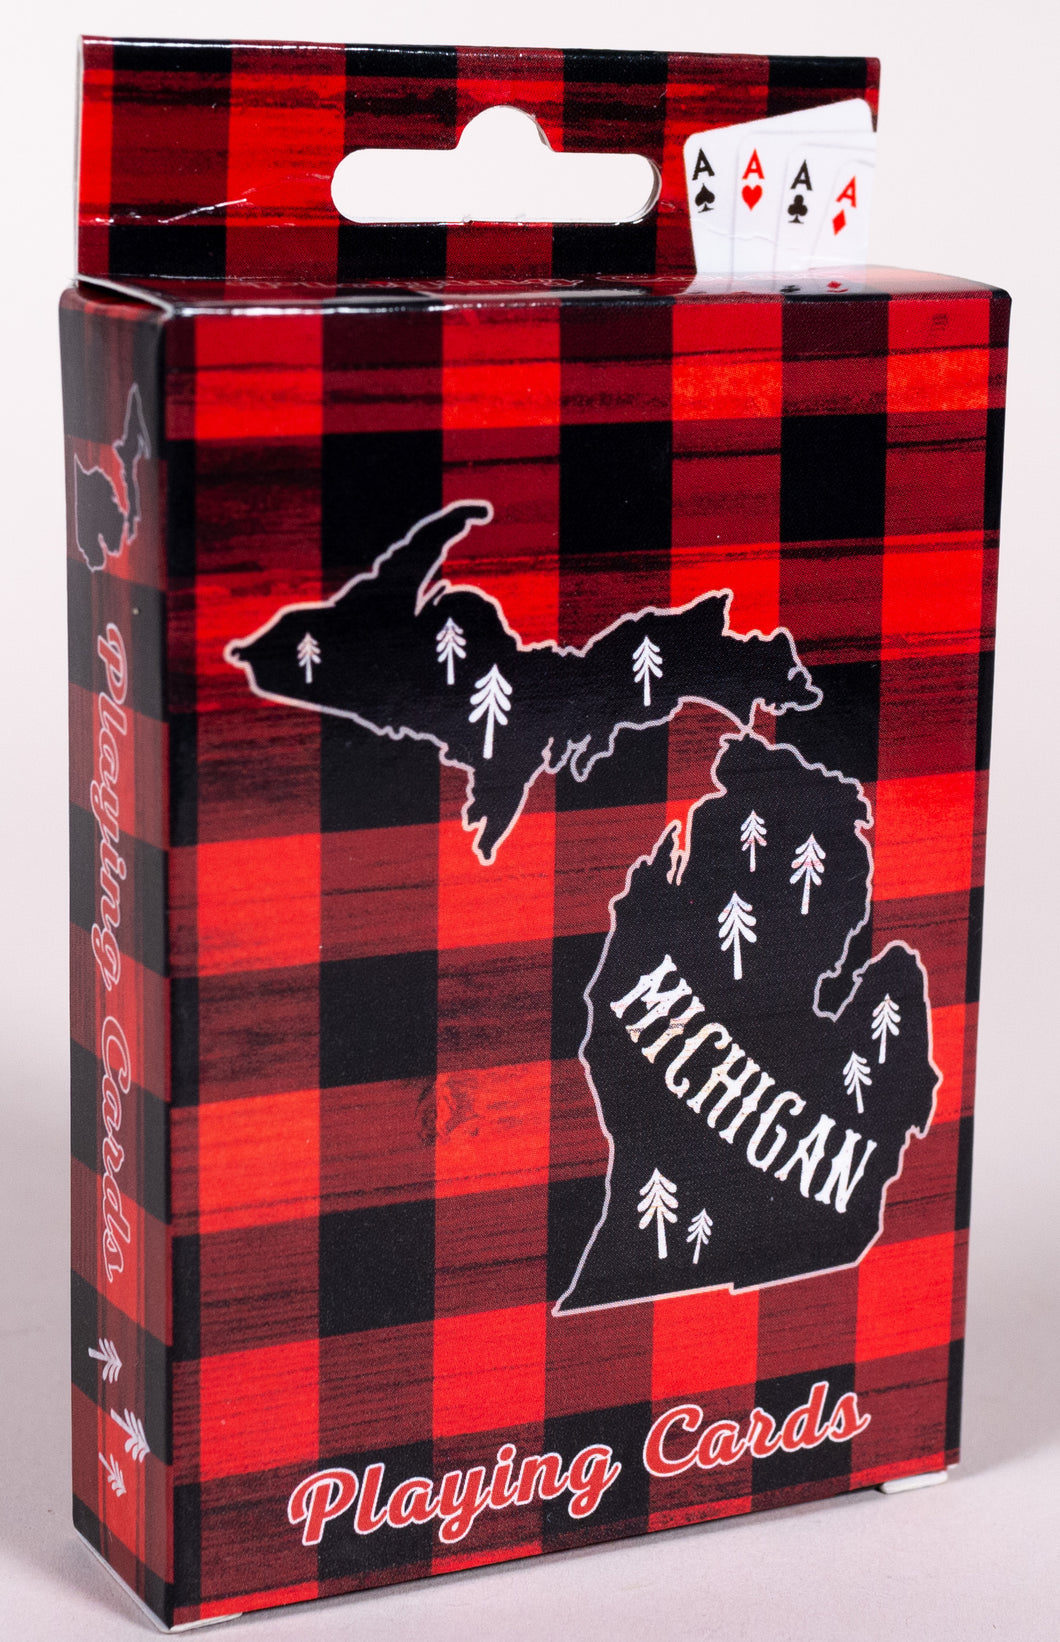 Playing Cards - Michigan Plaid Theme - 1071924248